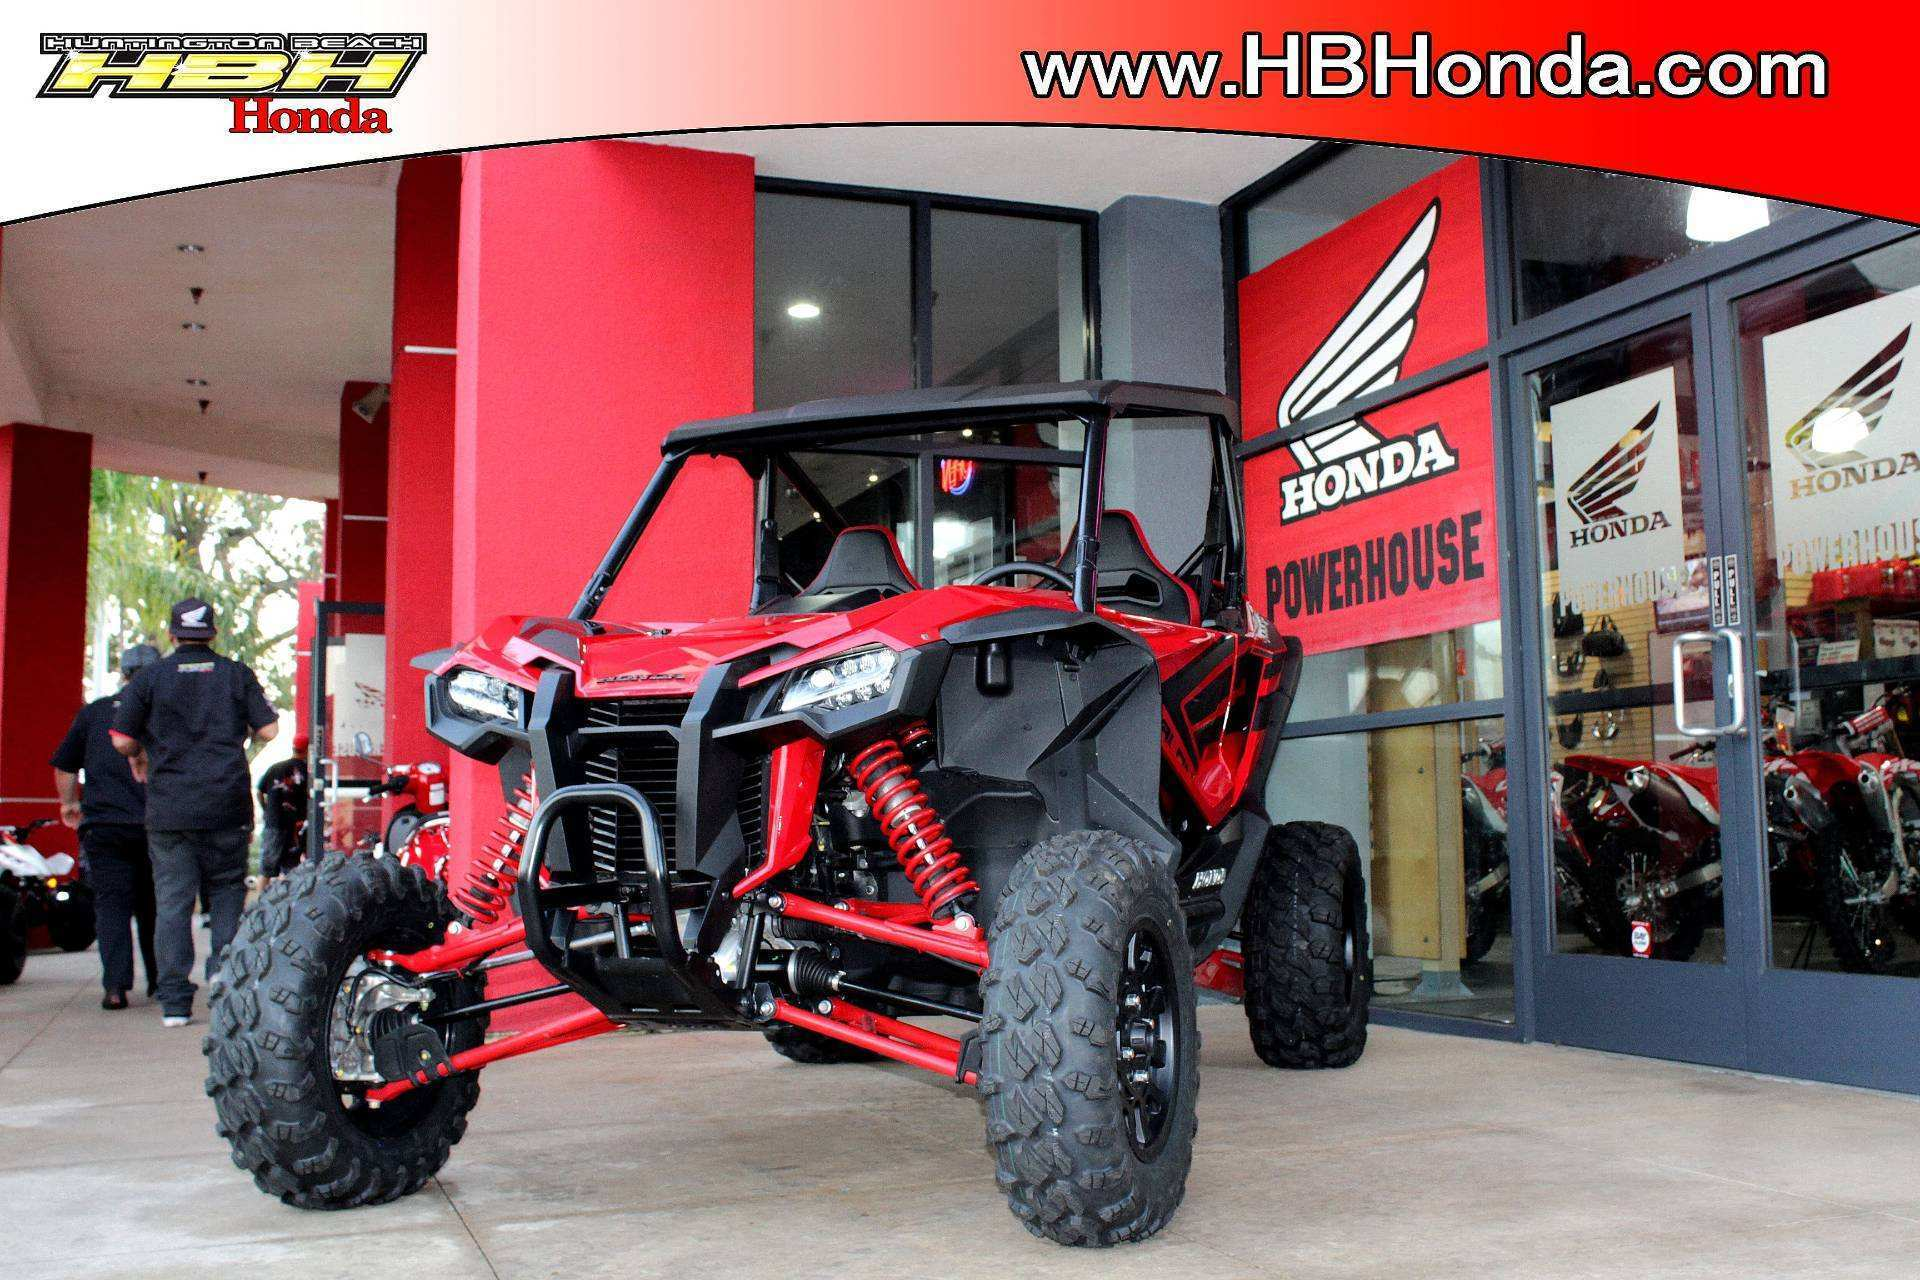 60 All New 2019 Honda Sport Quad Redesign Price And Review Wallpaper for 2019 Honda Sport Quad Redesign Price And Review